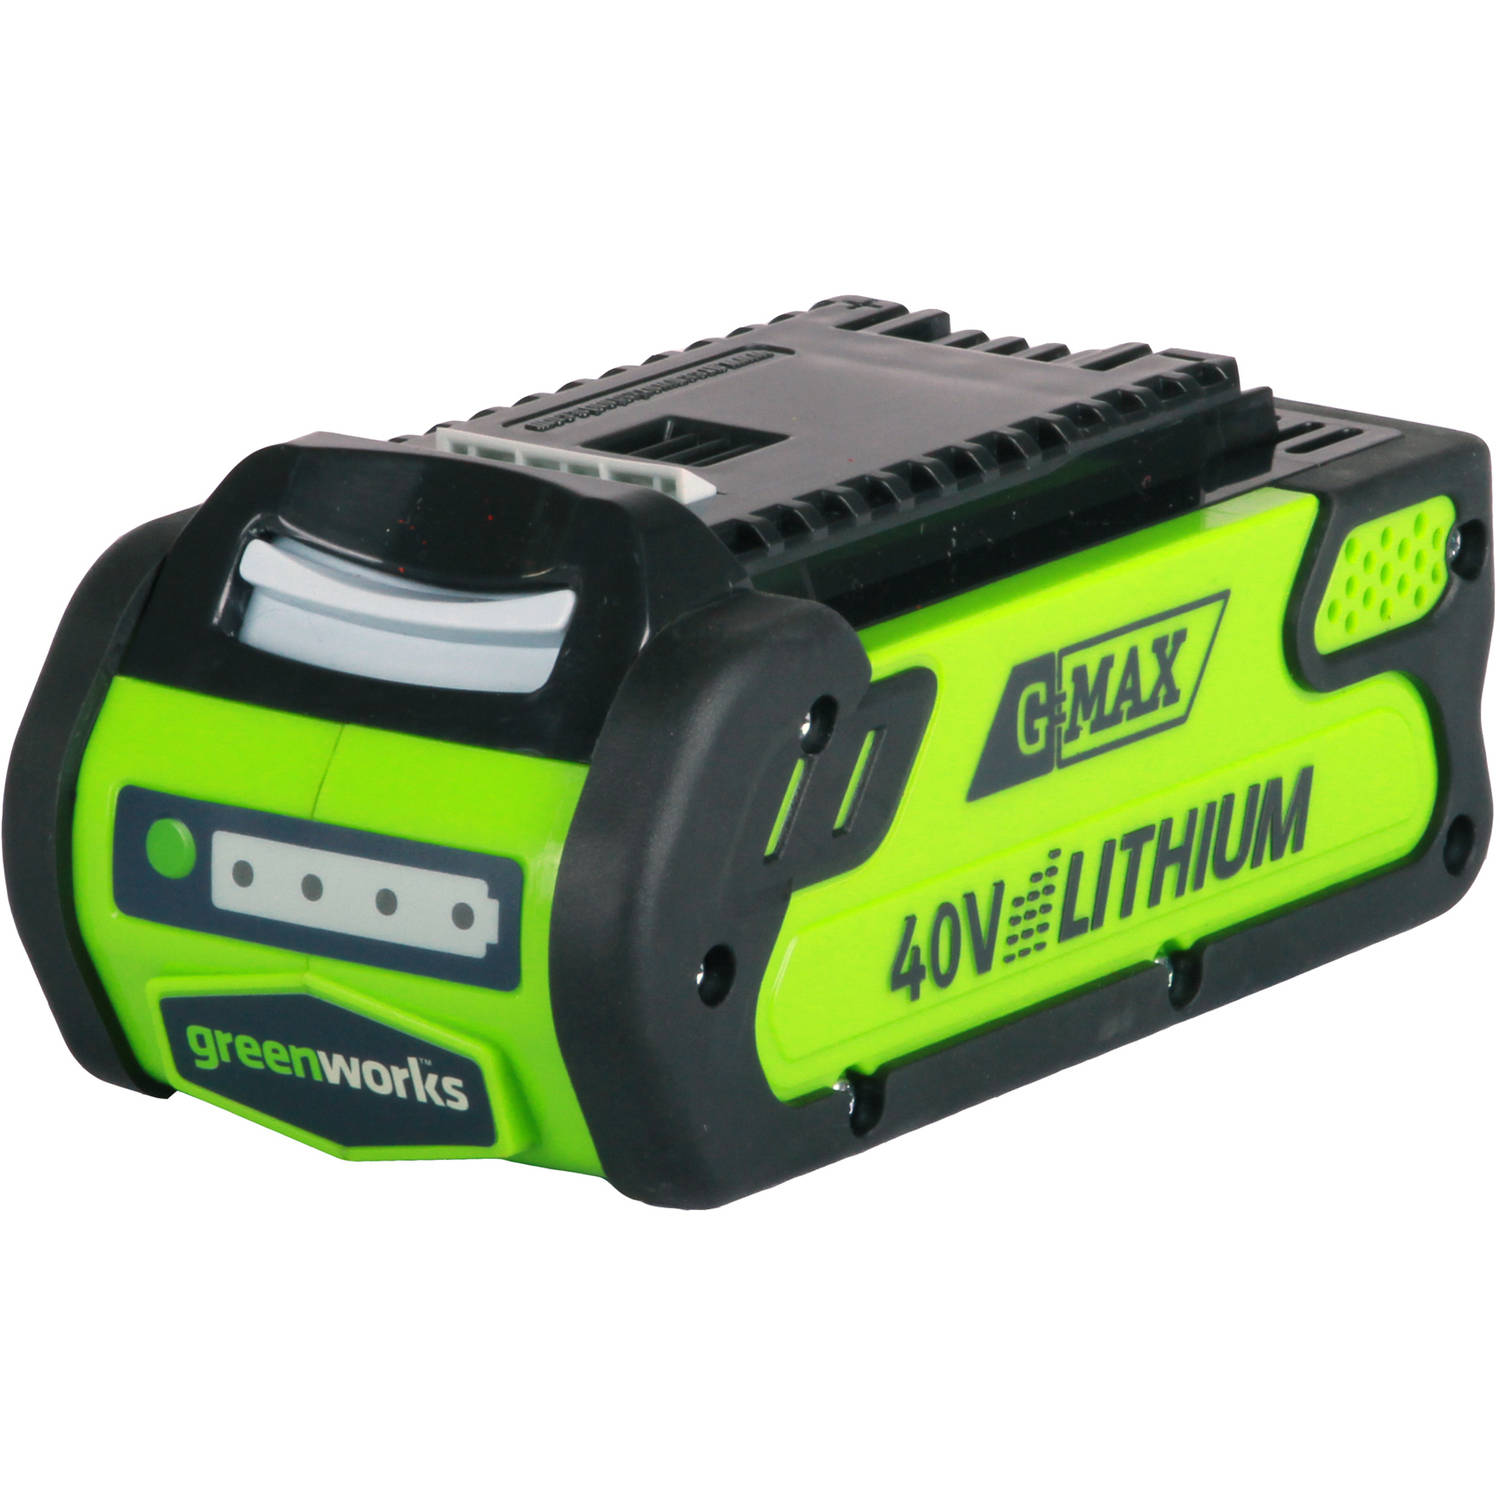 GreenWorks G-MAX 40-Volt 2AH Lithium-Ion Battery